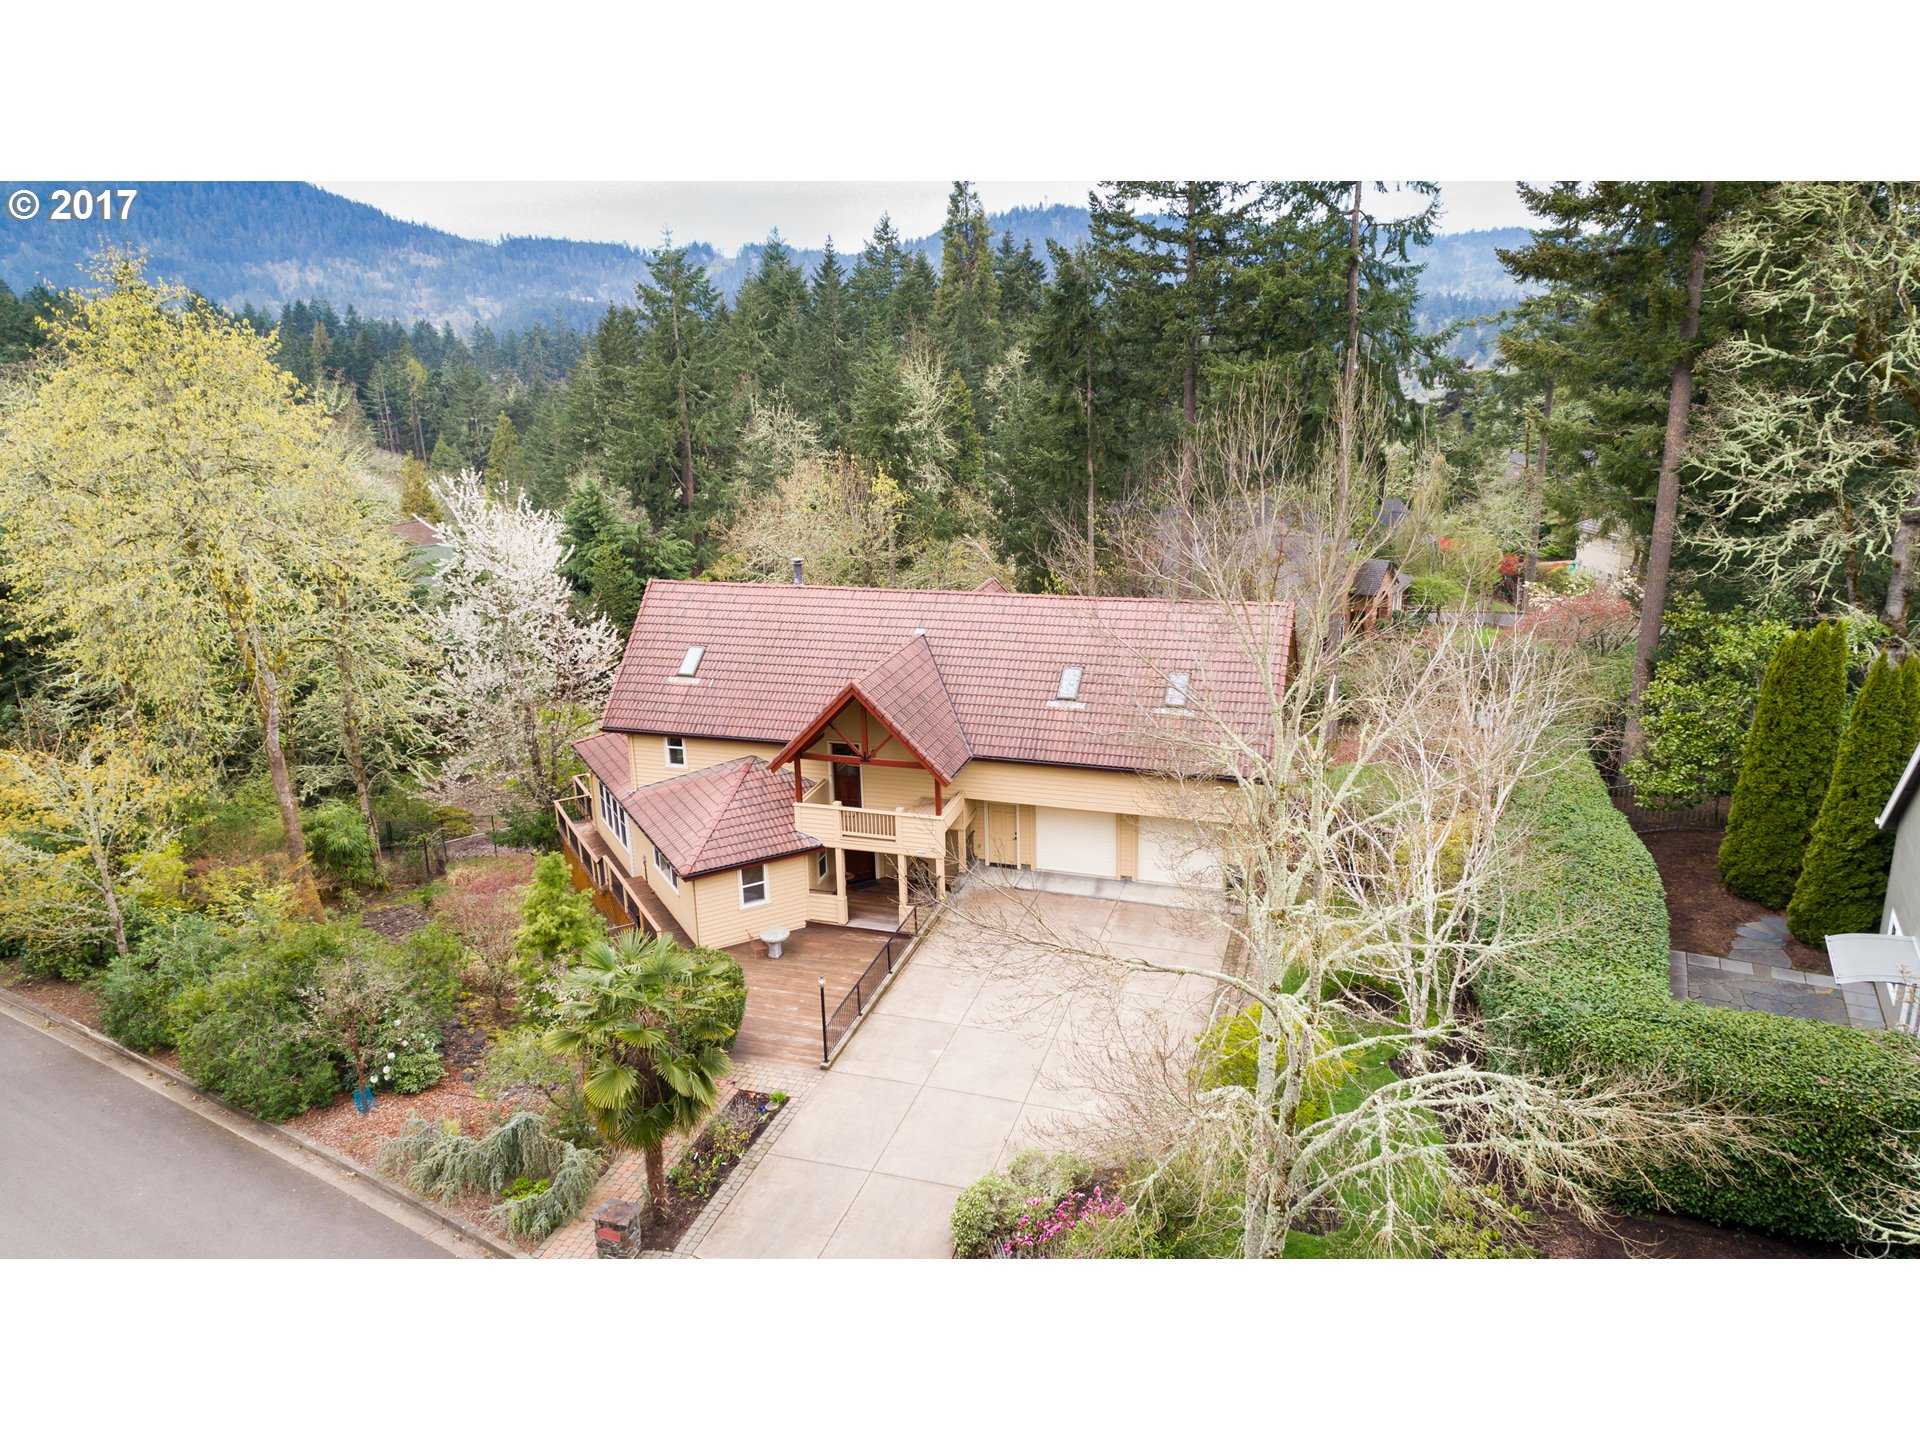 4540 S SHASTA LOOP, Eugene, OR 97405